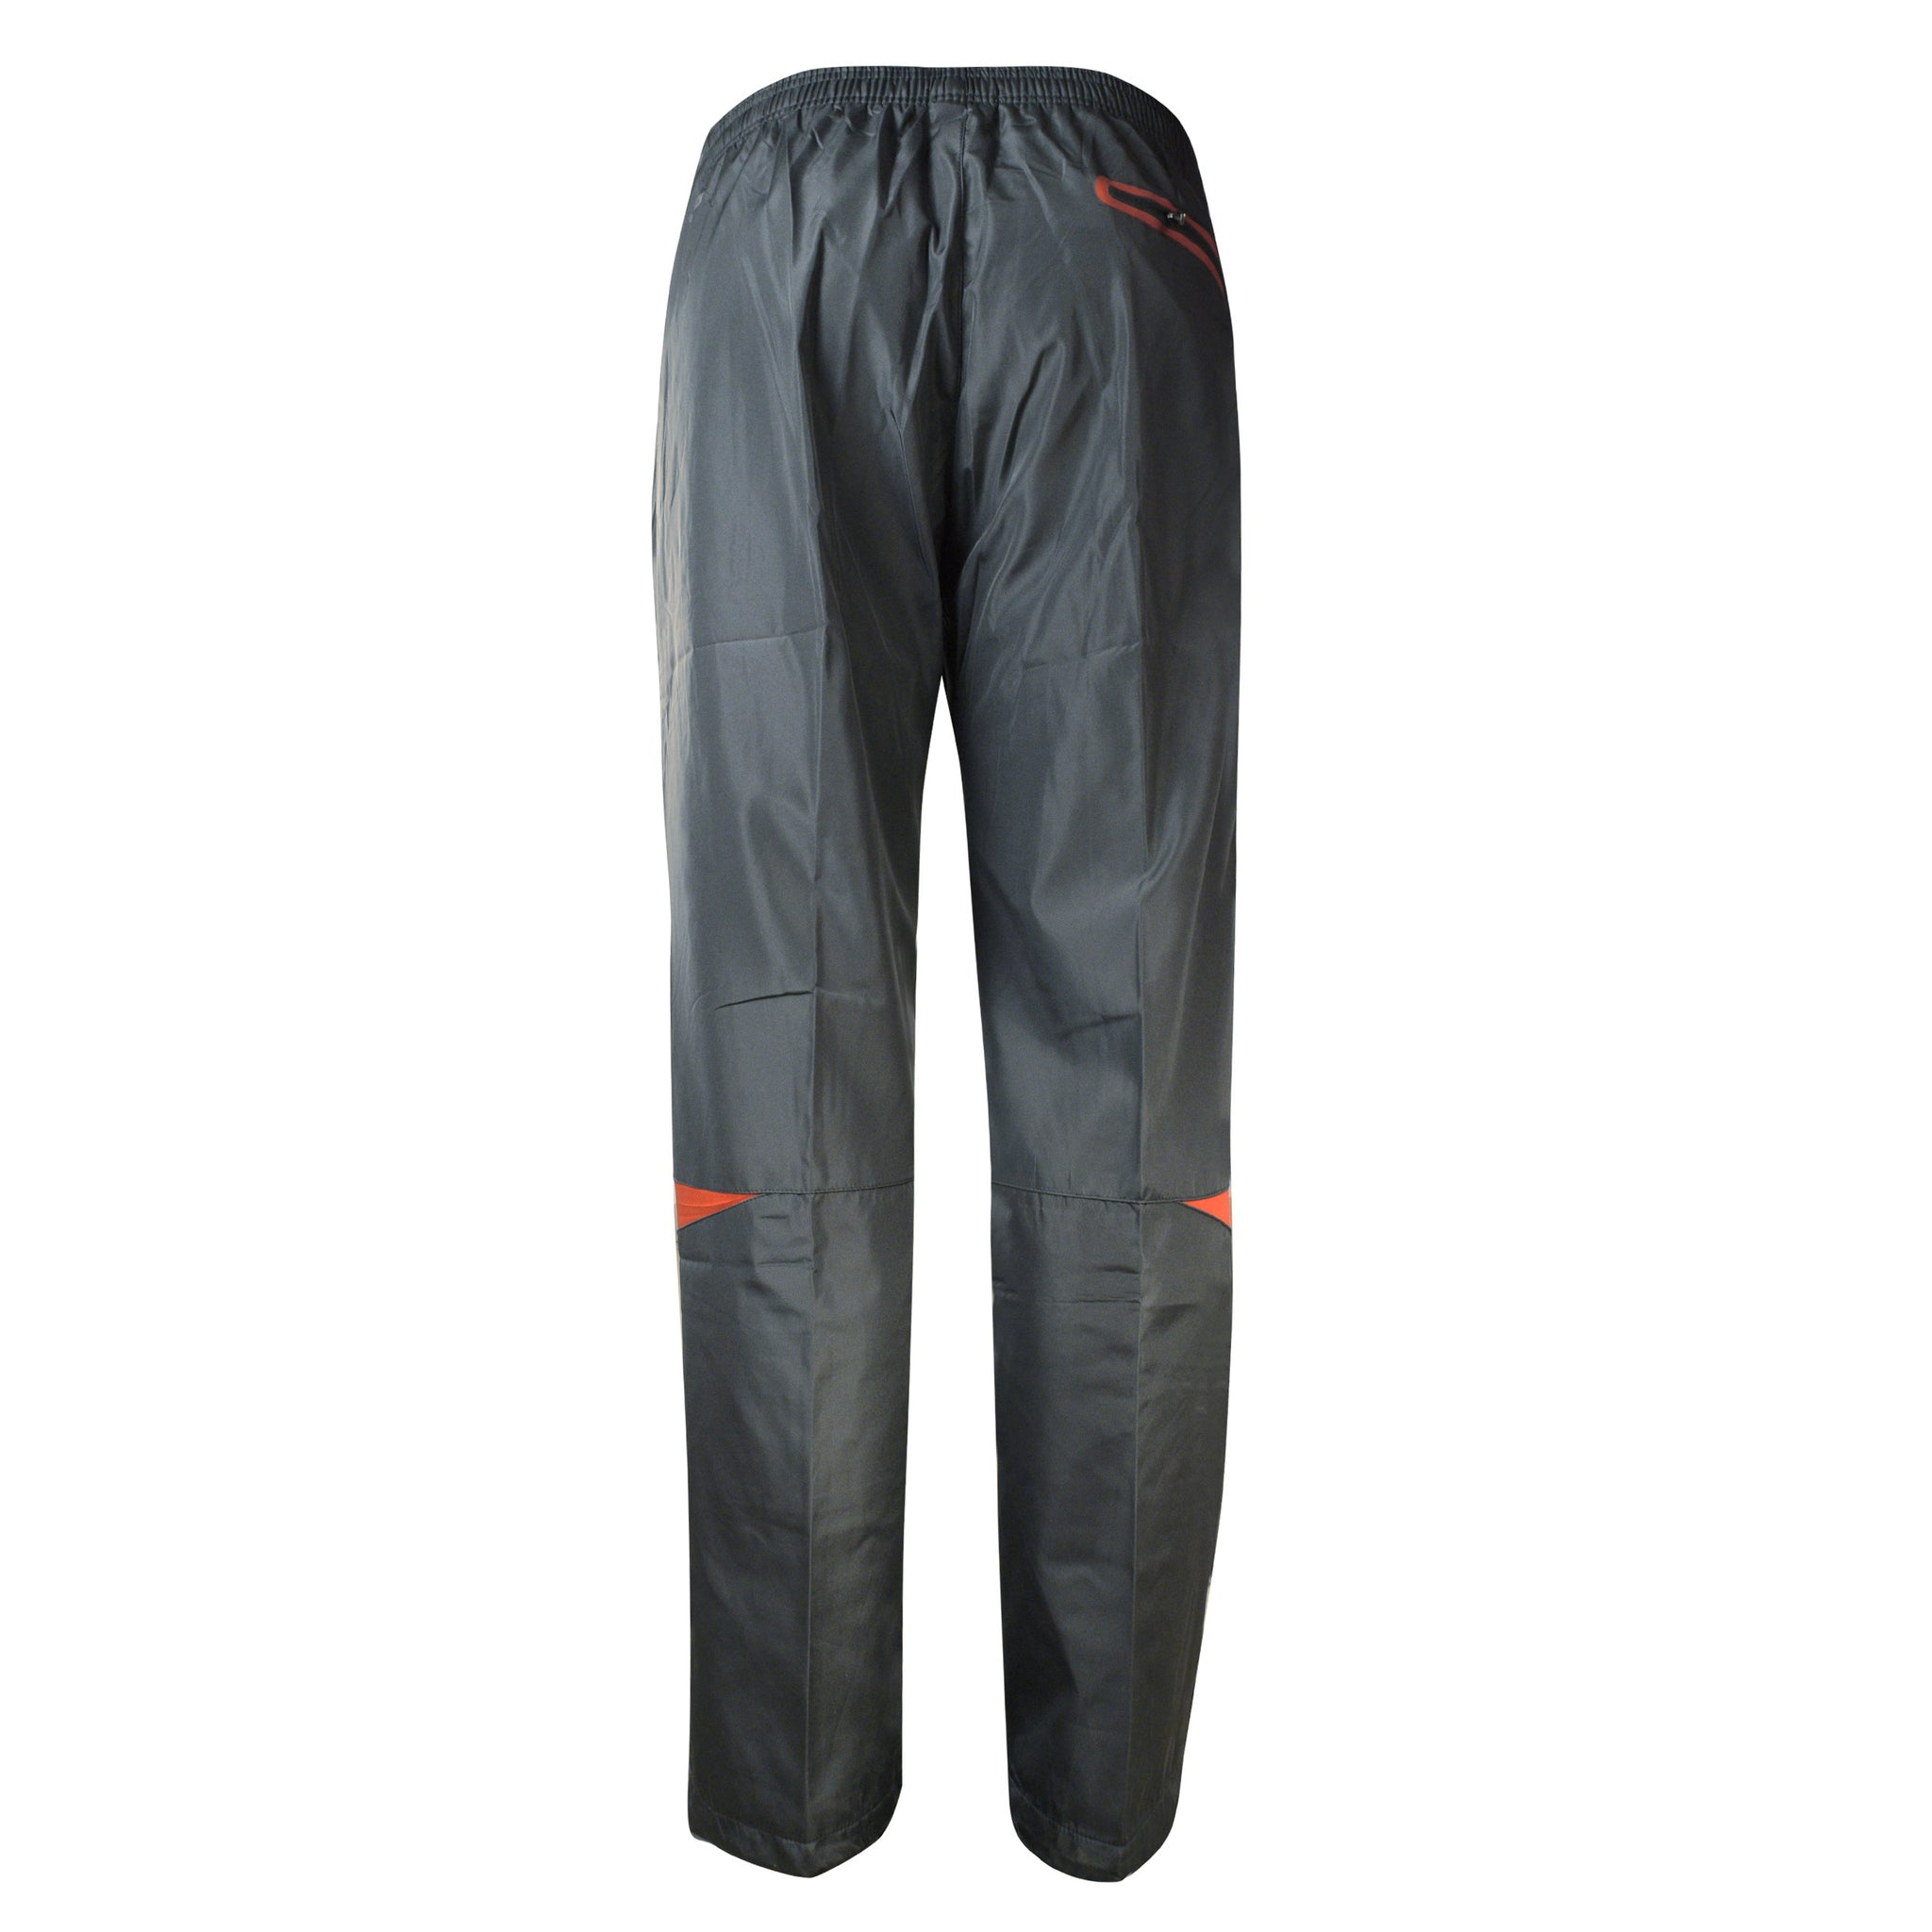 Pants Caballero Performance PA-025-PFC